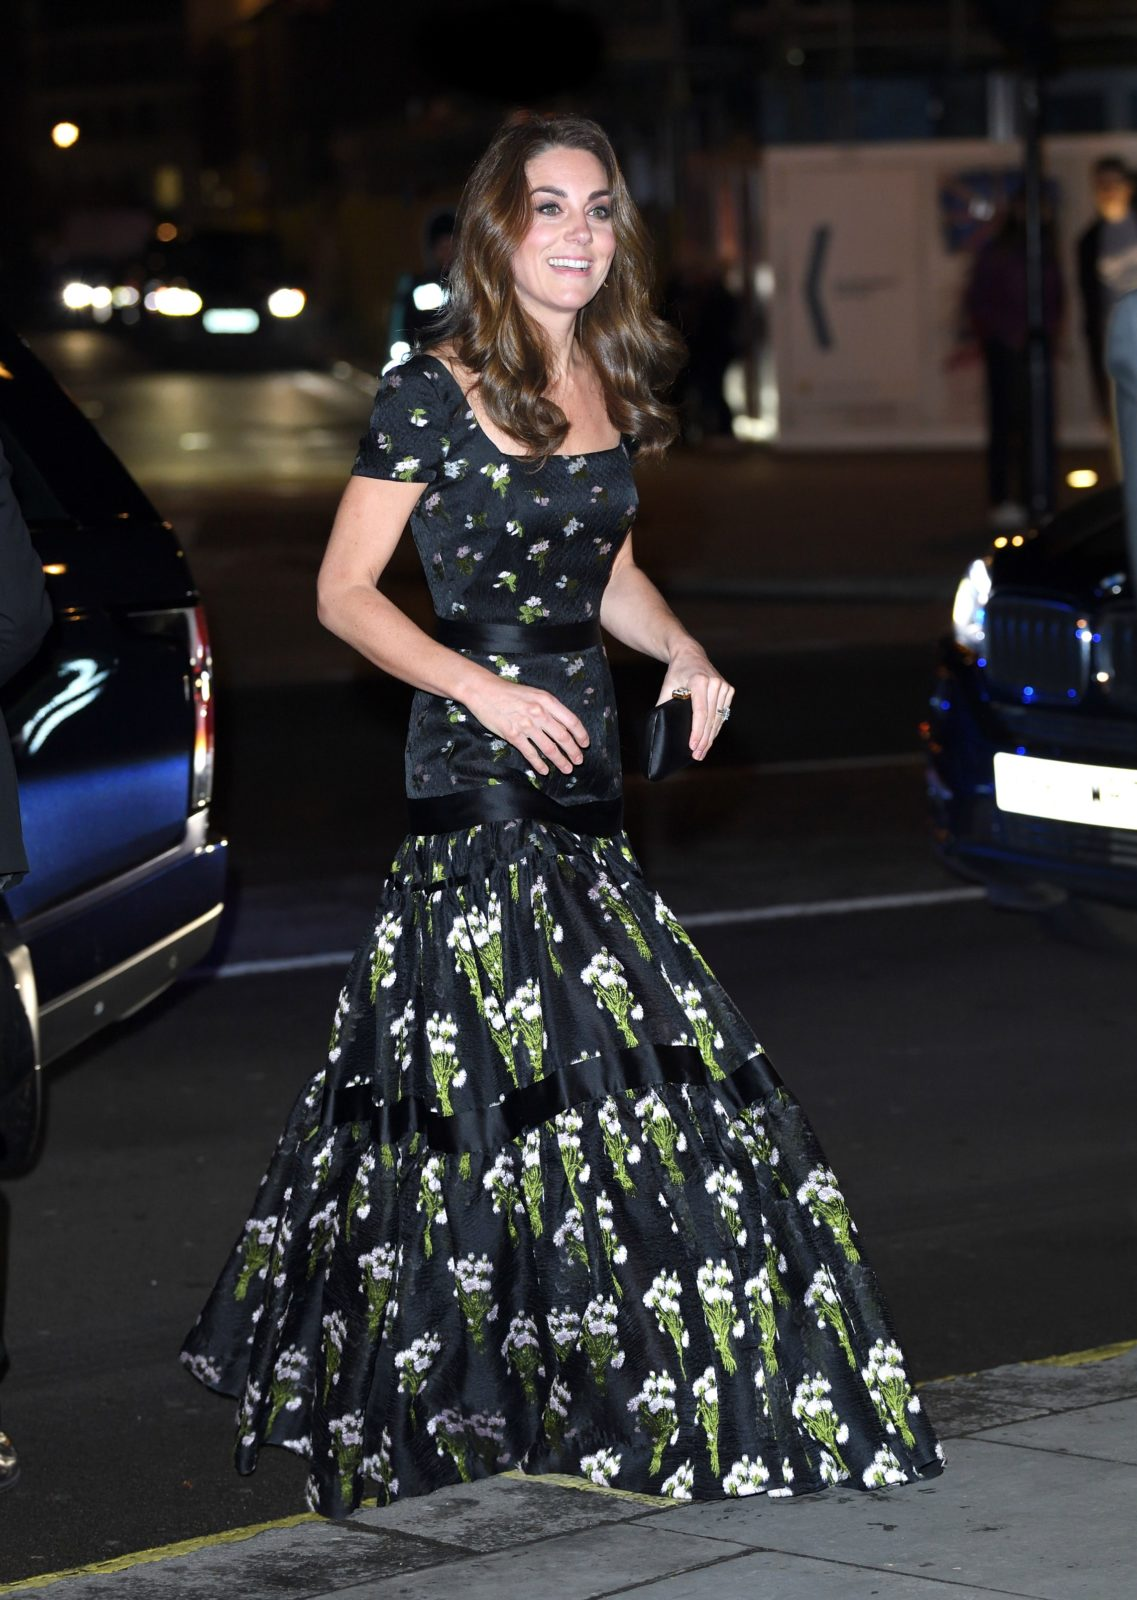 Catherine stunned in the floral Alexander McQueen dress. Source: Getty.